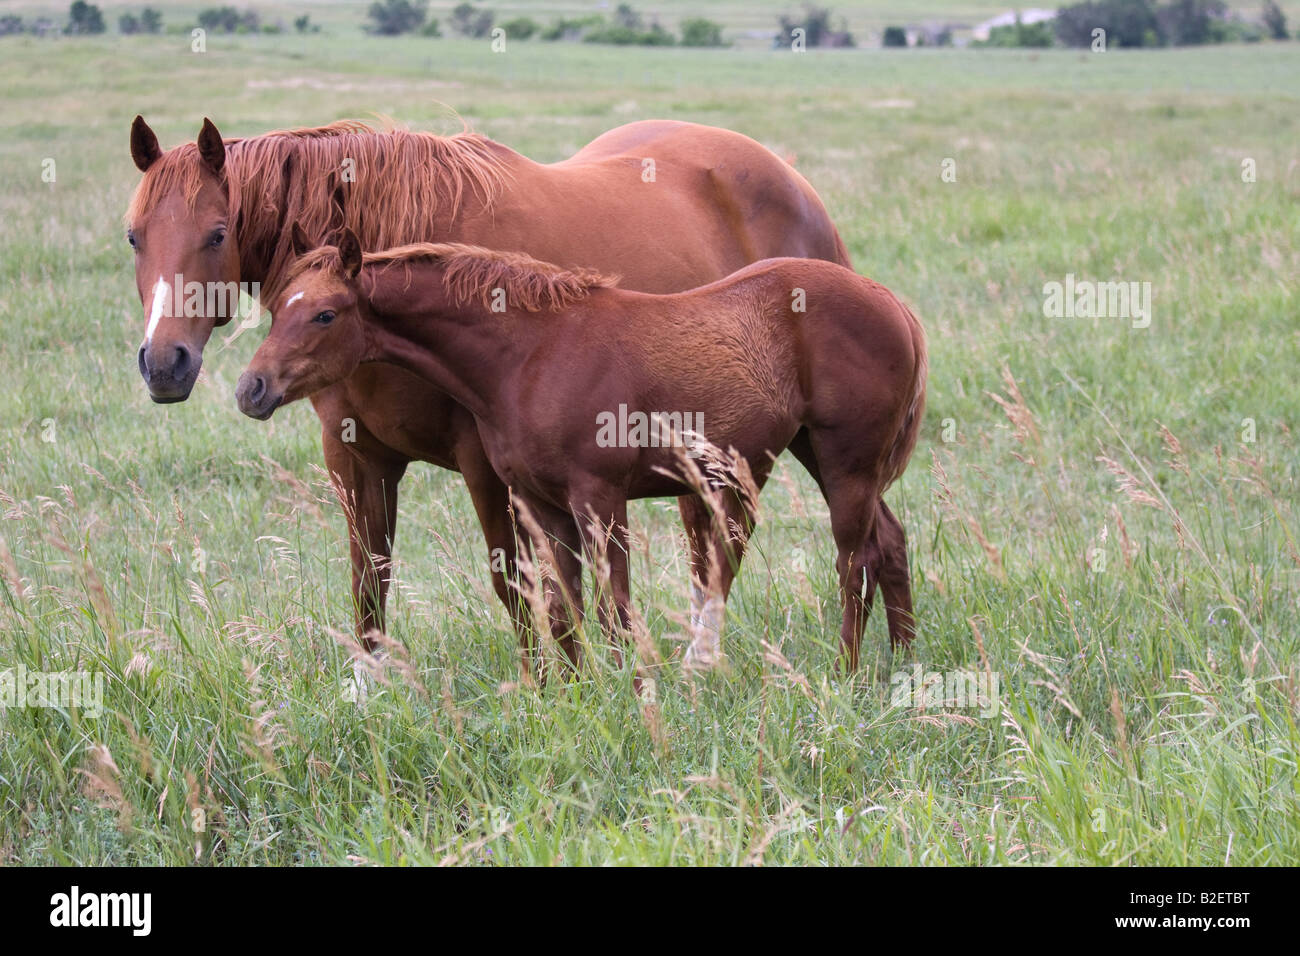 Sorrel quarter horse mare and foal in field of tall green grass - Stock Image